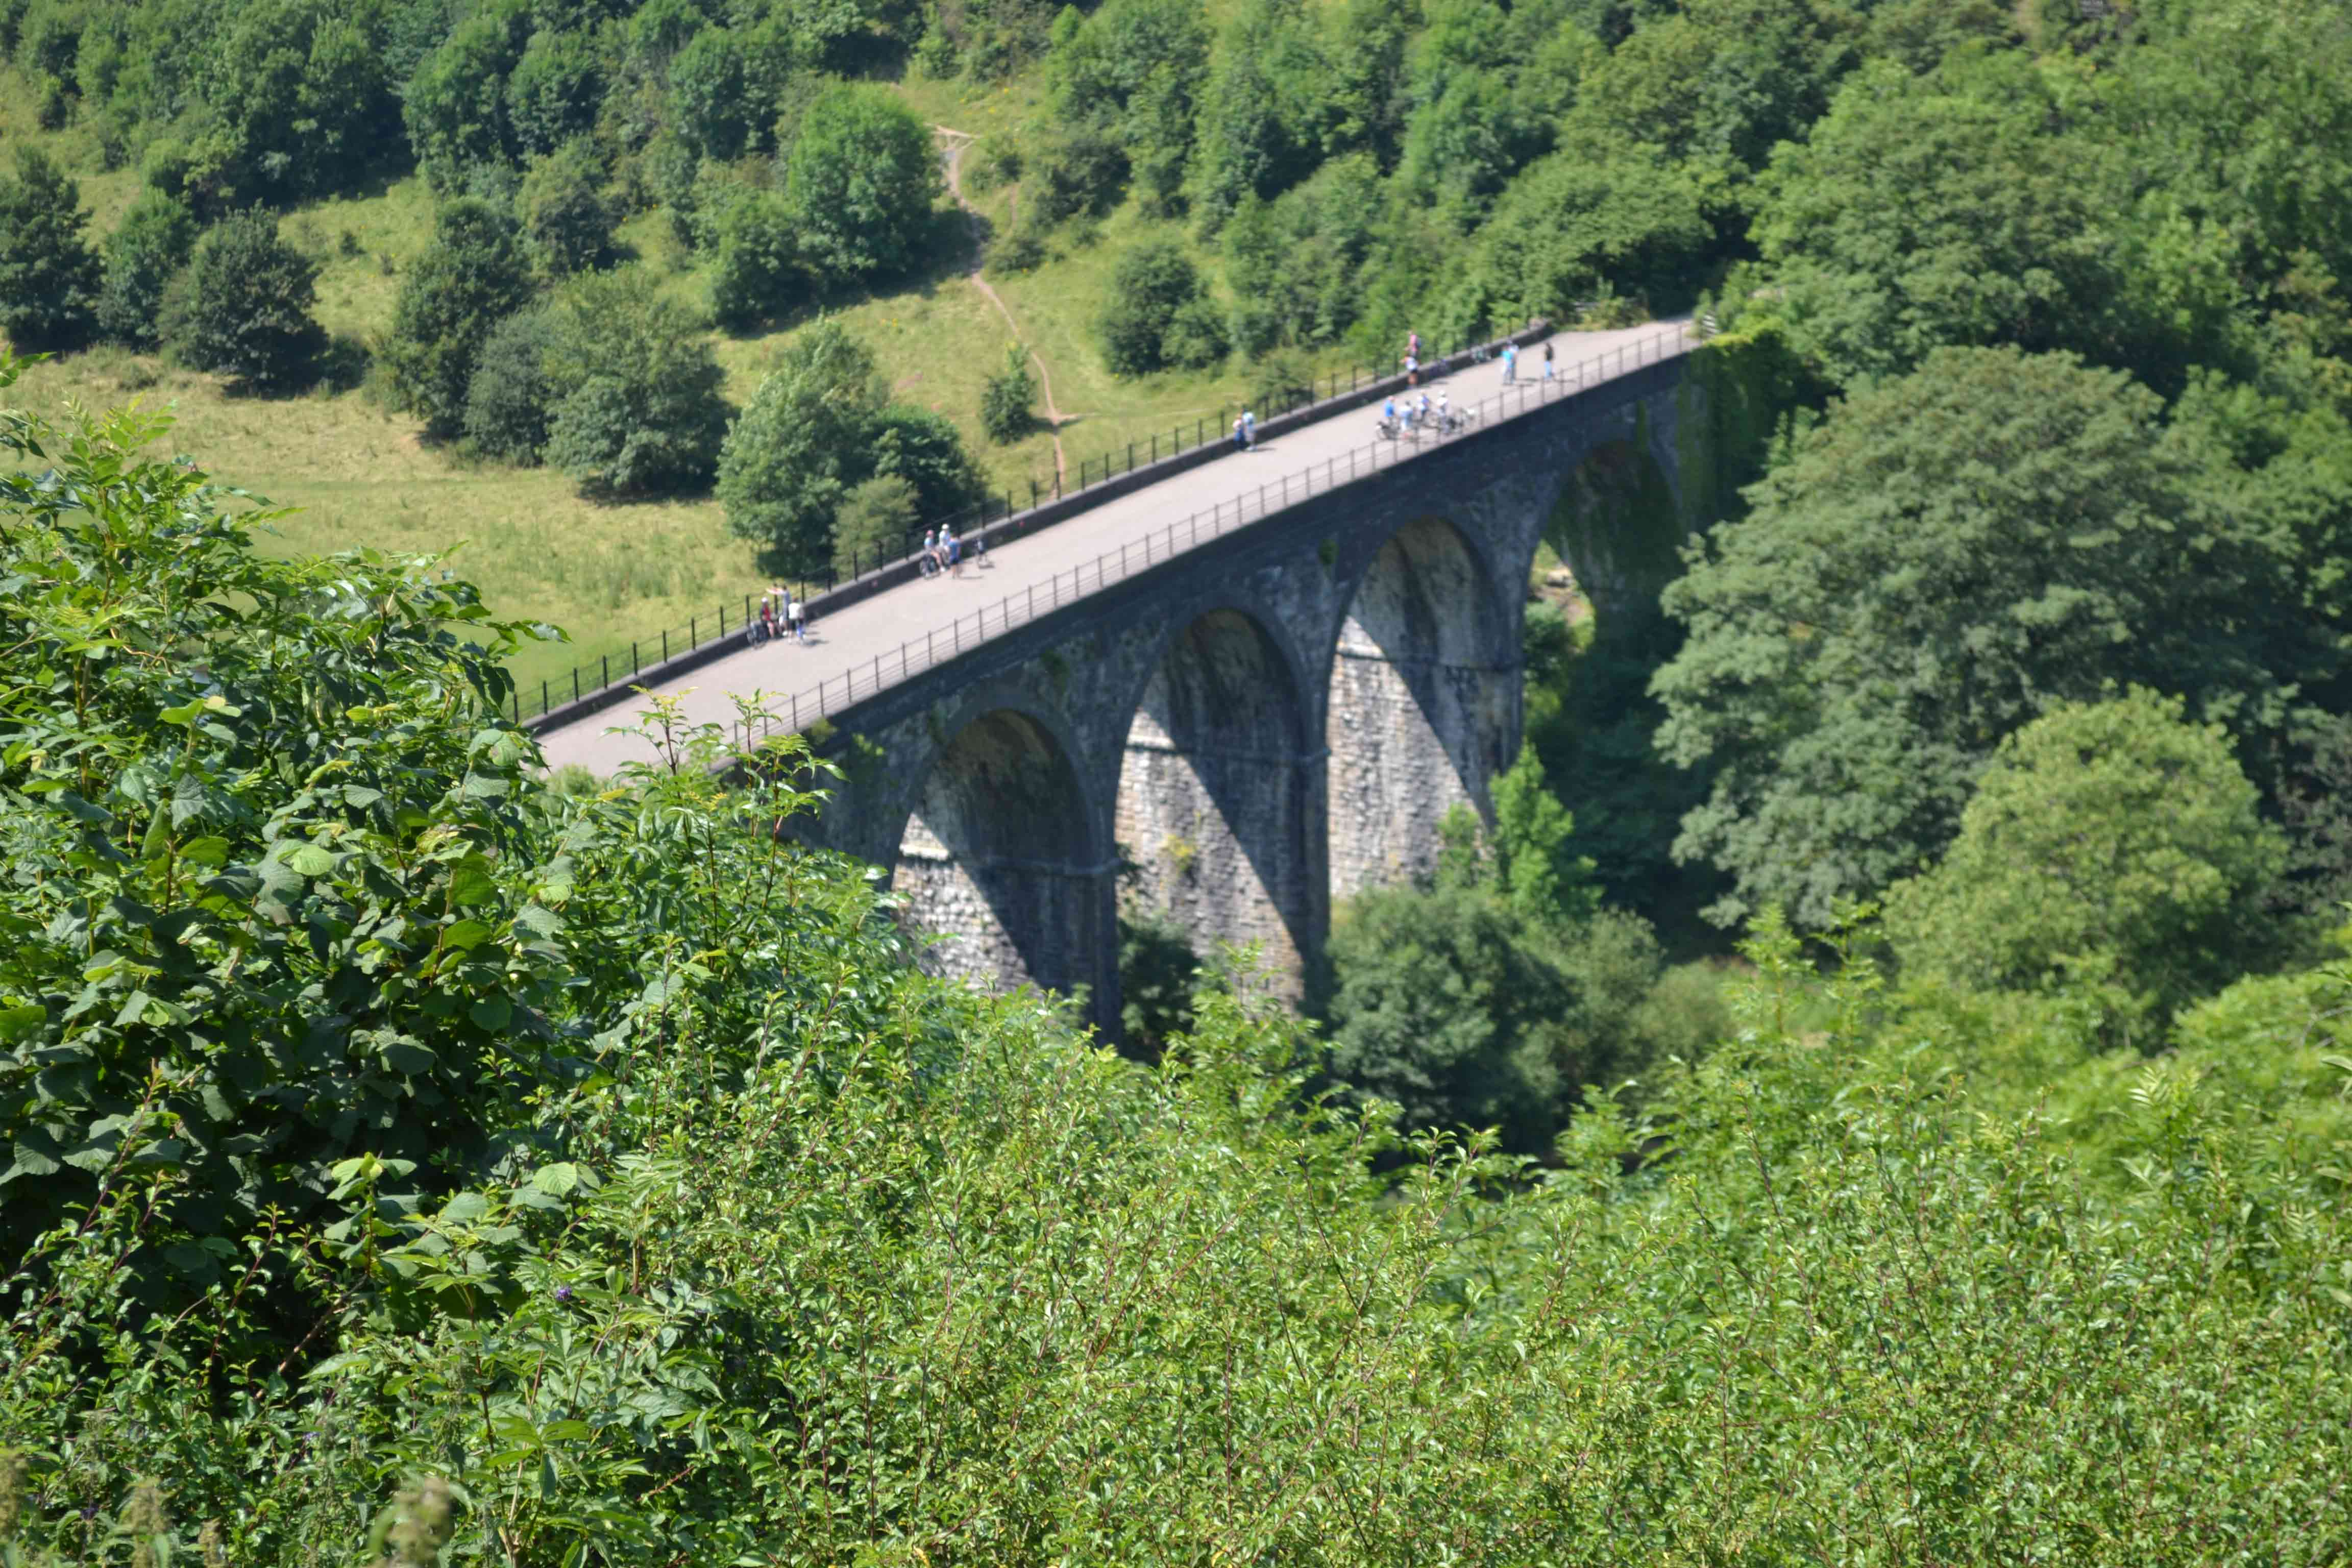 A Classic View of Headstone Viaduct